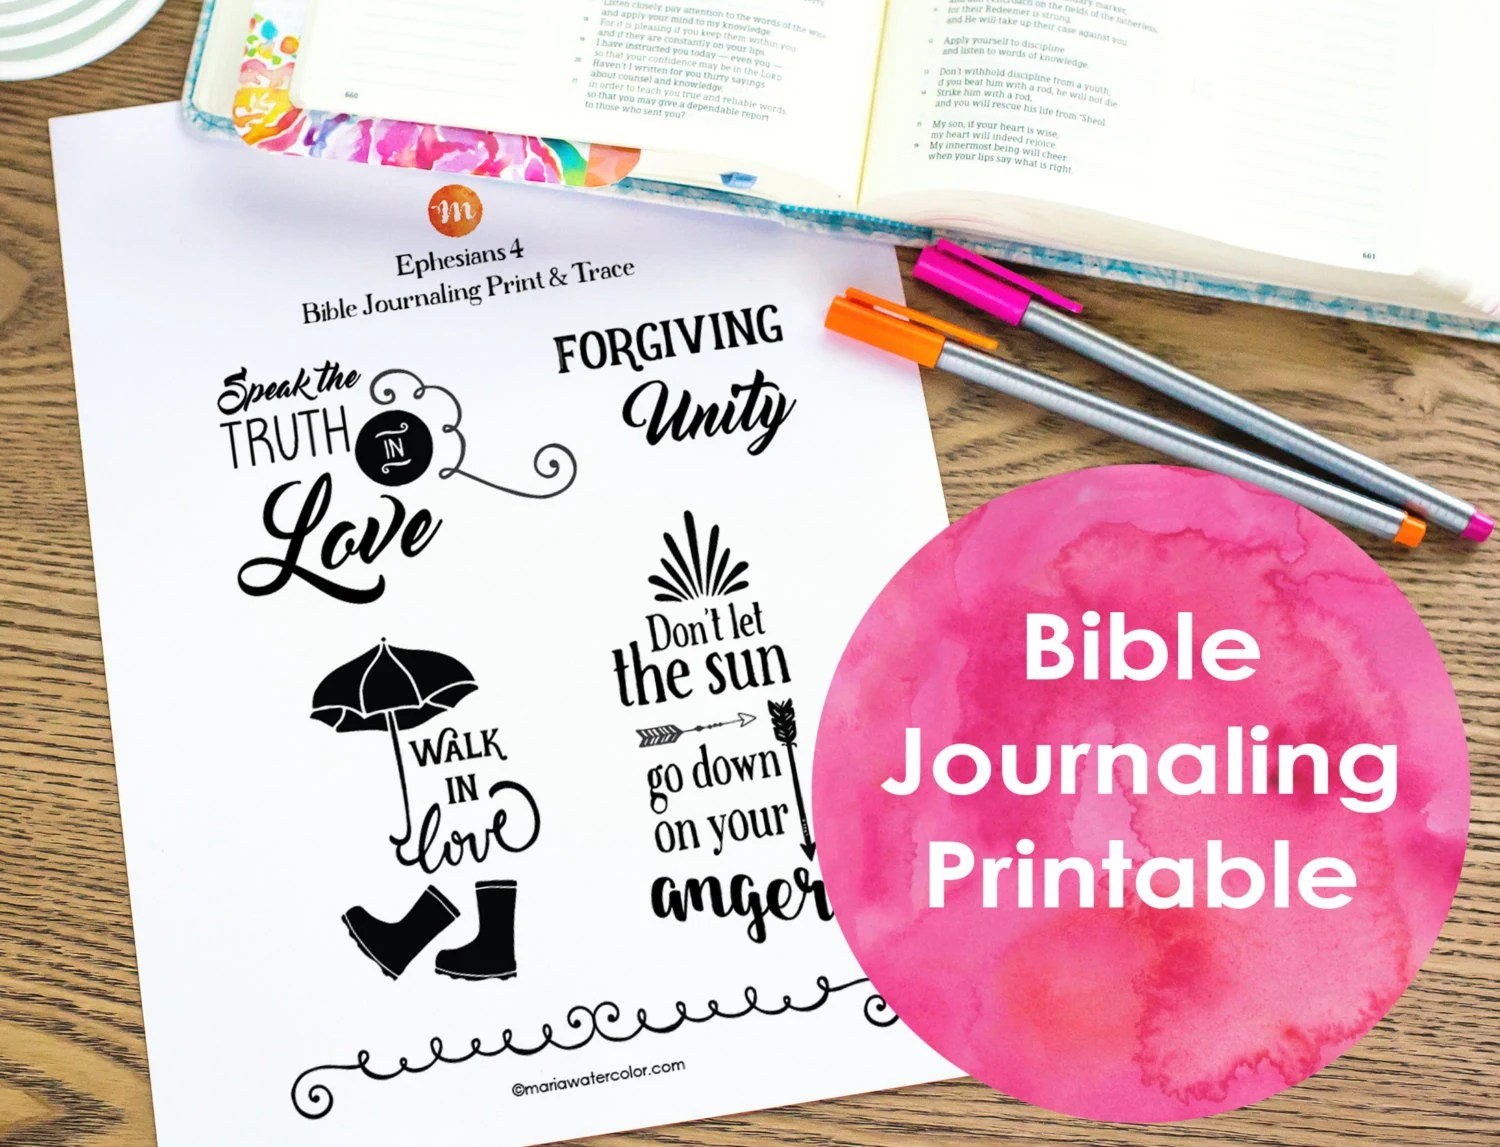 Bible Journaling Printable Ephesians 4 By Mariawatercolor On Etsy